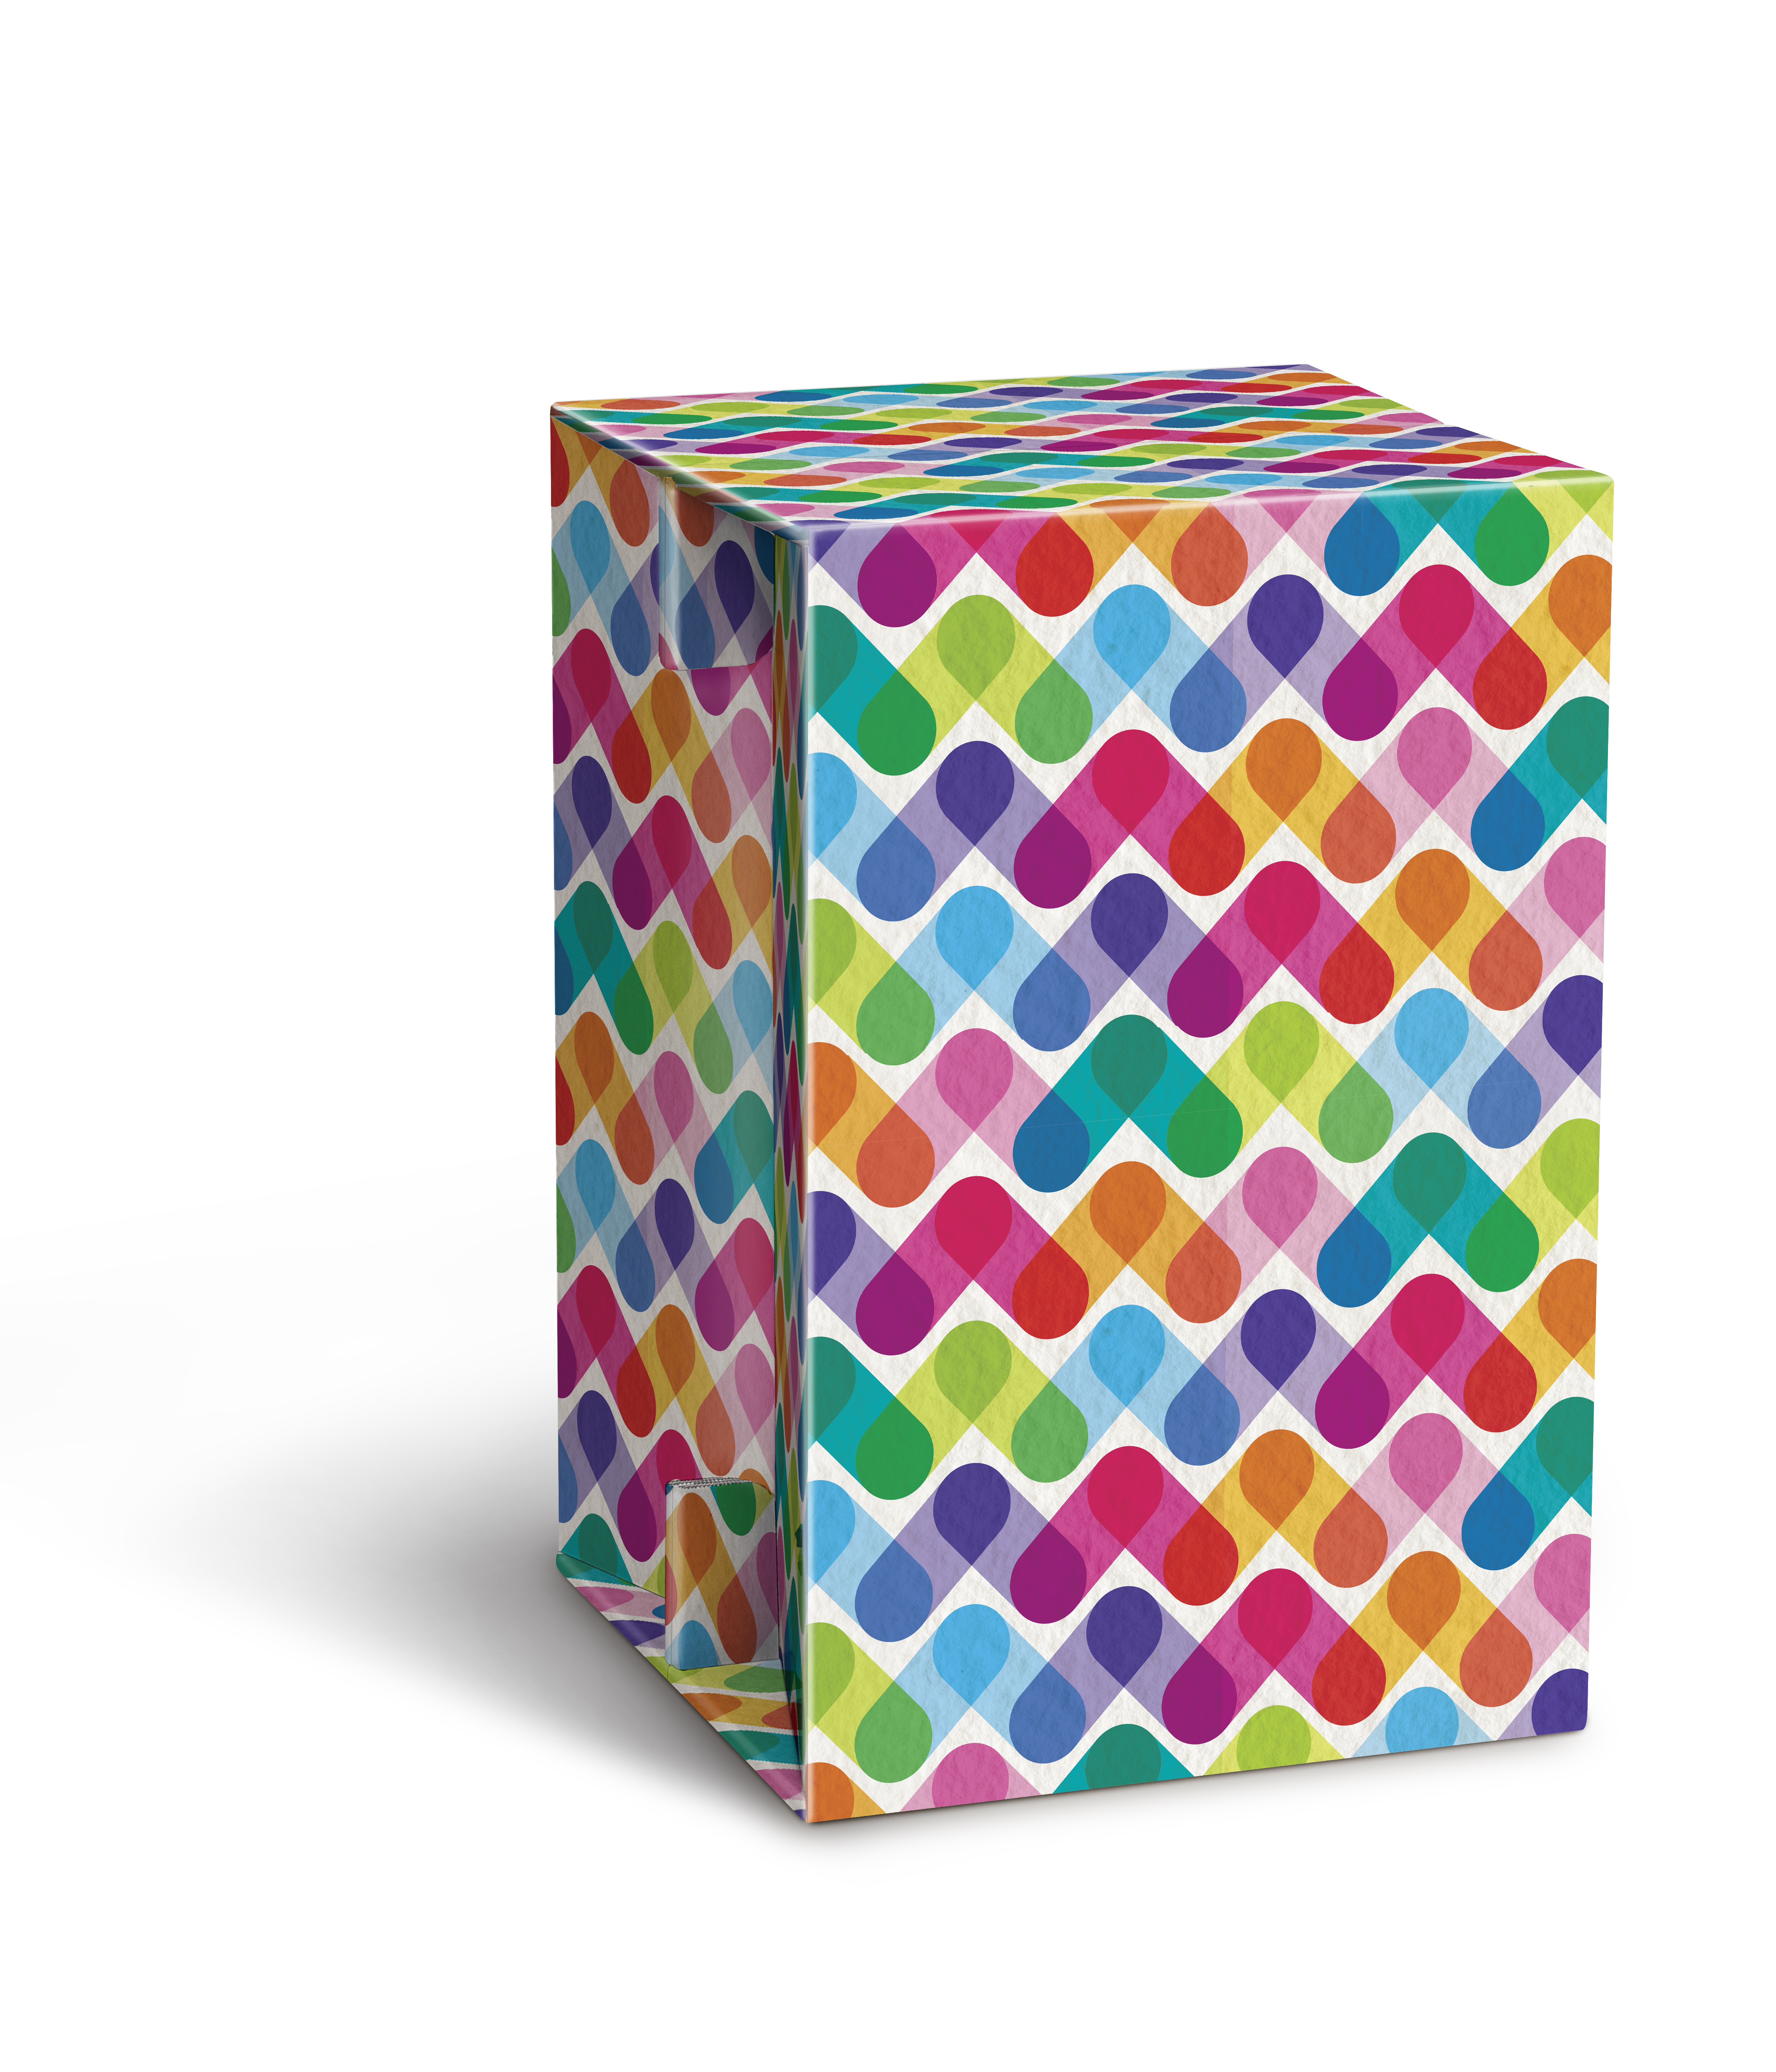 Carton Cajon - Colored Stripes